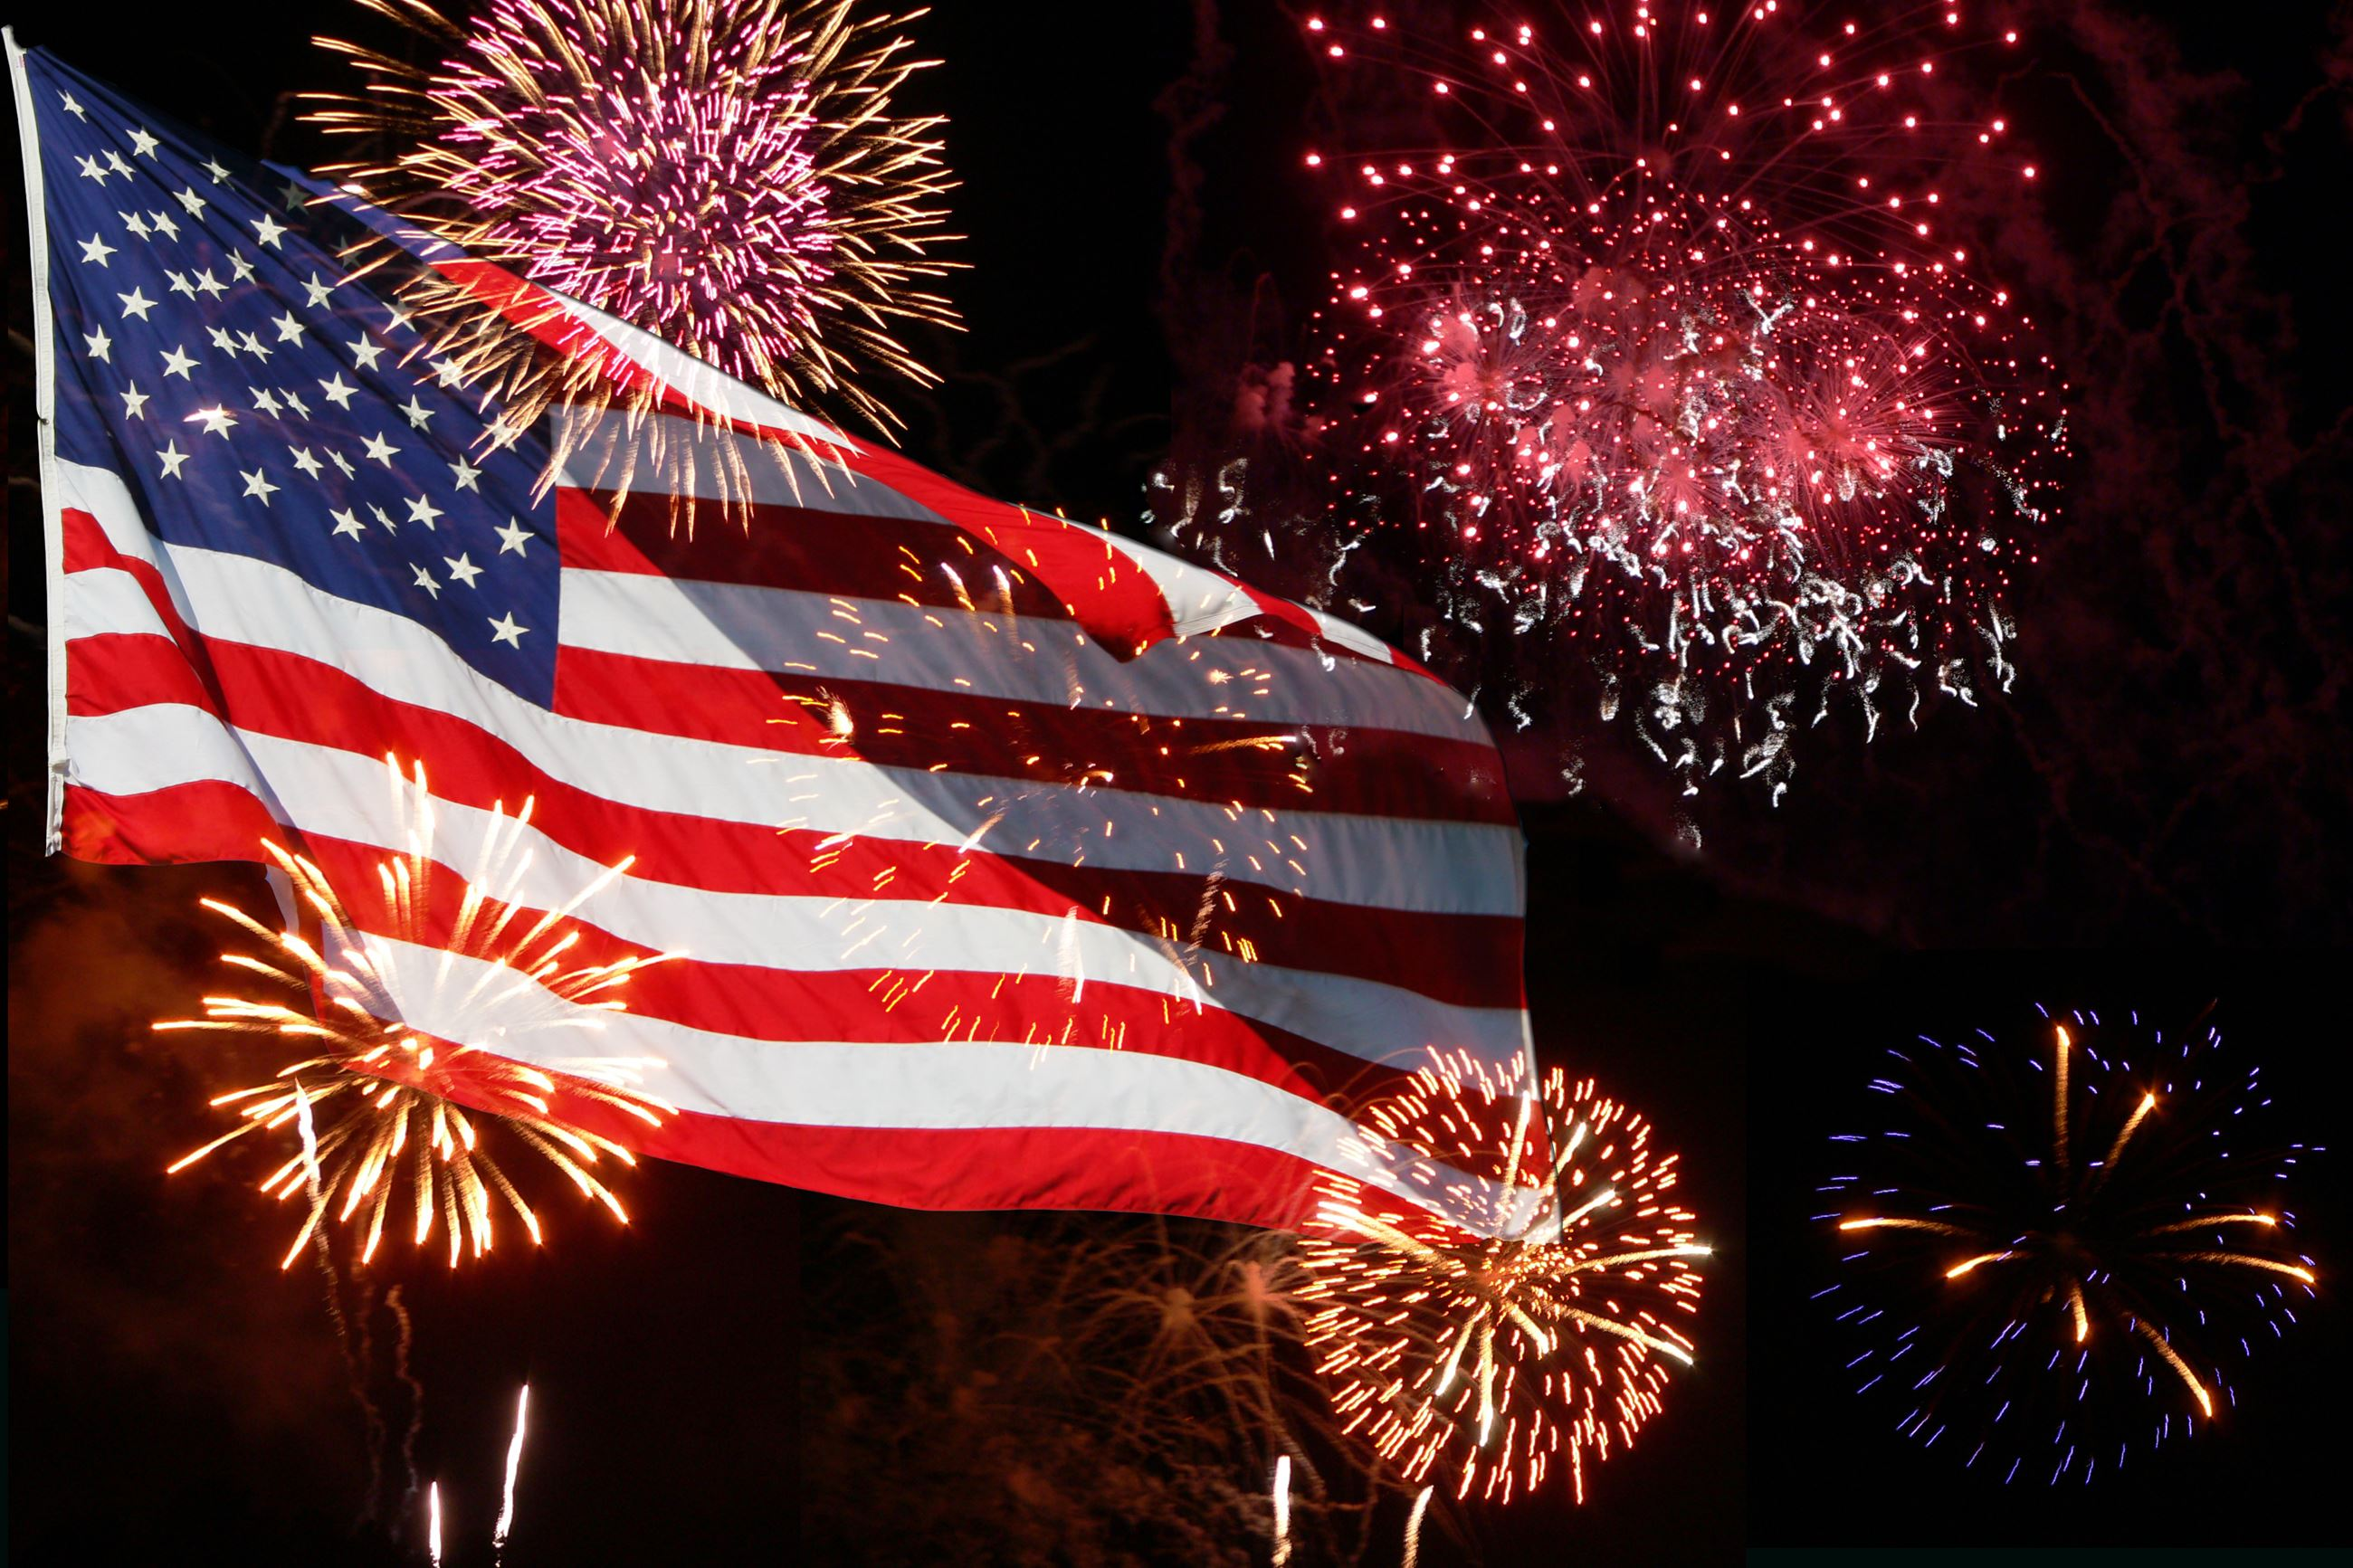 Red, white and blue American flag waving in the sky surrounded by exploding fireworks